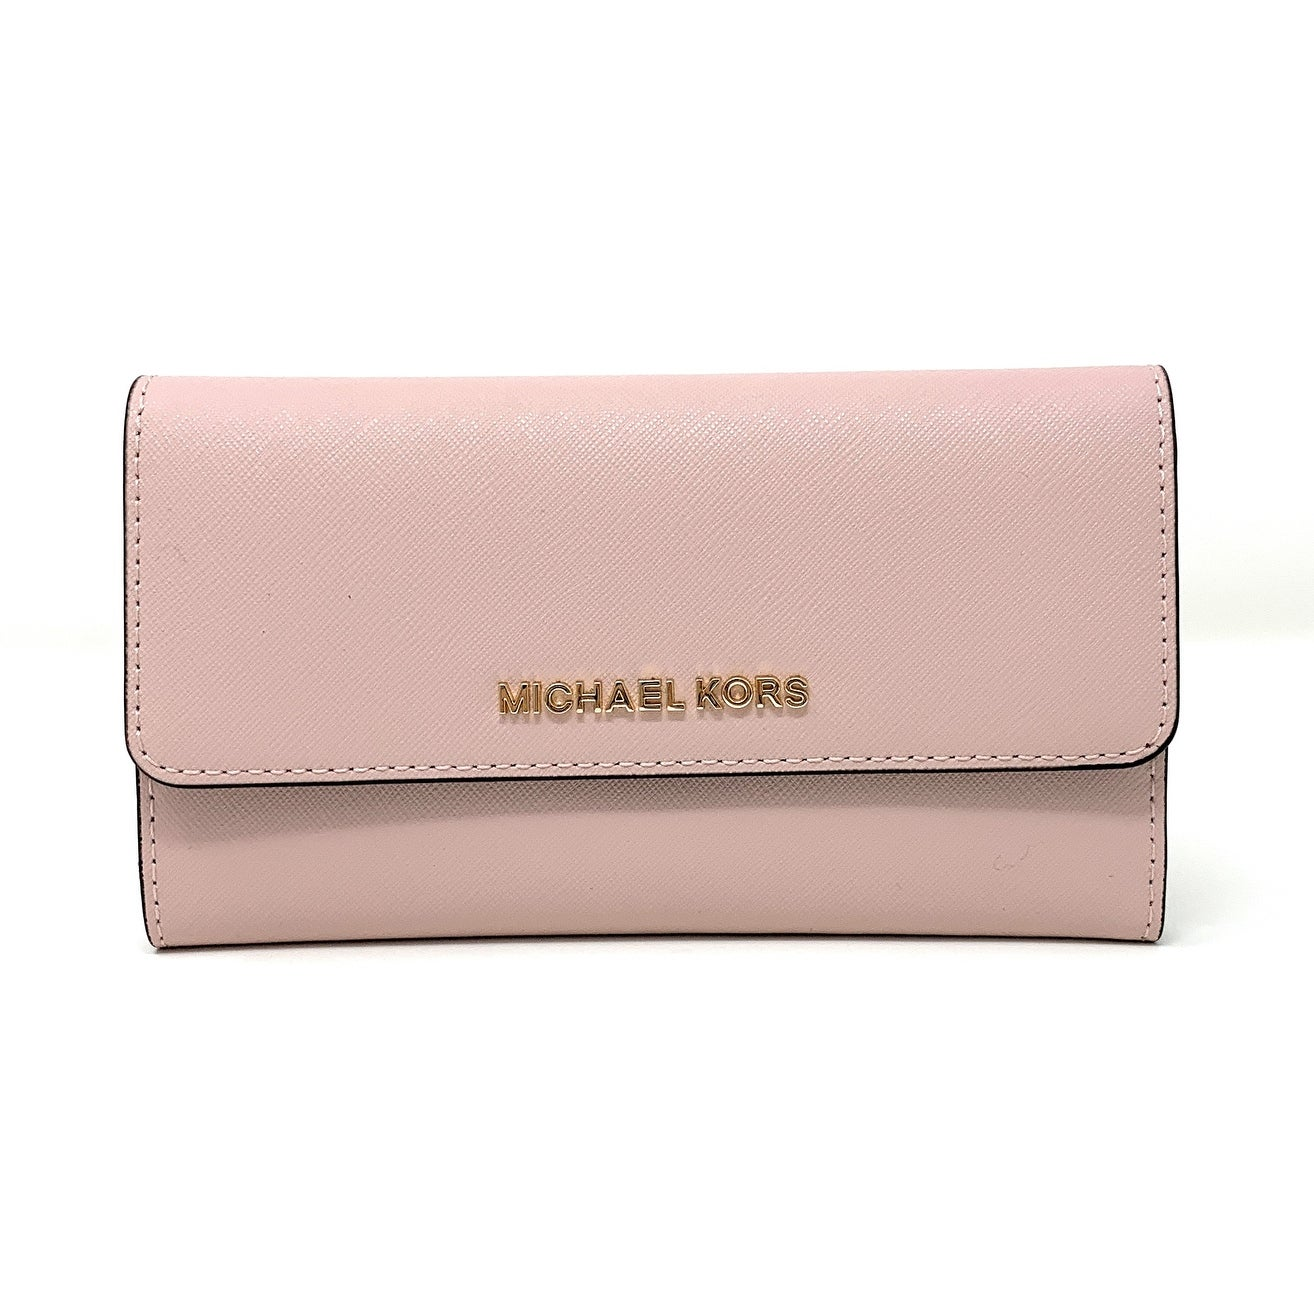 96d550f2d5bf Shop Michael Kors Jet Set Travel Large Trifold Leather Wallet 35S8GTVF7L -  Ships To Canada - Overstock - 23446690